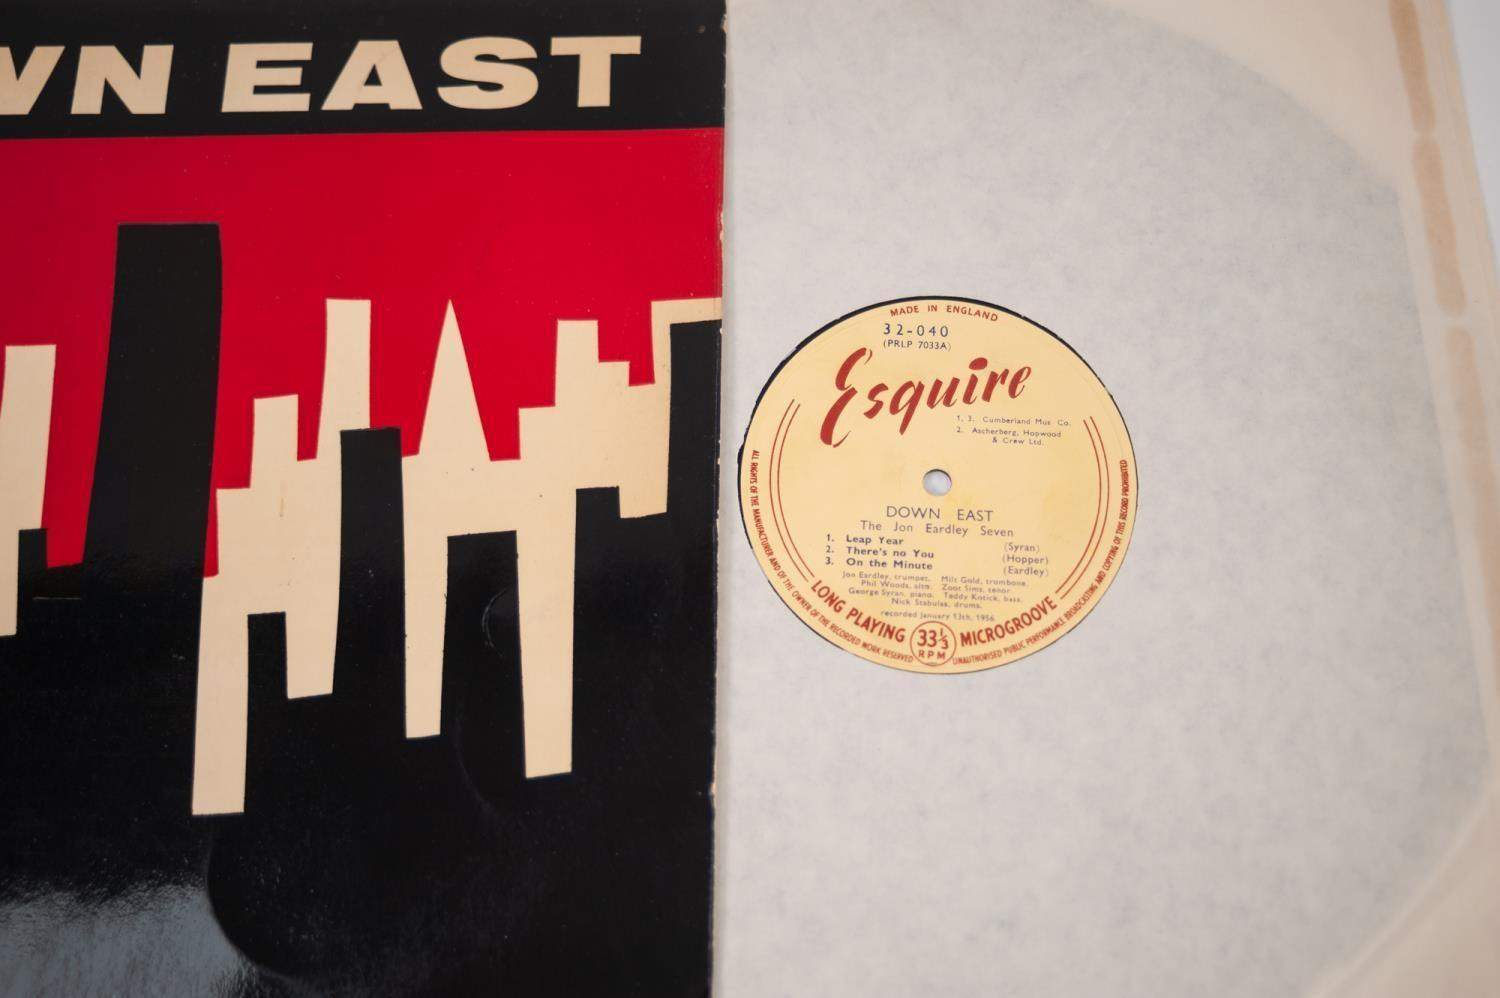 JAZZ, VINYL RECORDS- E IS FOR JON EARDLEY SEVEN-DOWN EAST, THE DOWNEST JAZZ WITH JON EARDLEY, ZOOT - Image 3 of 4